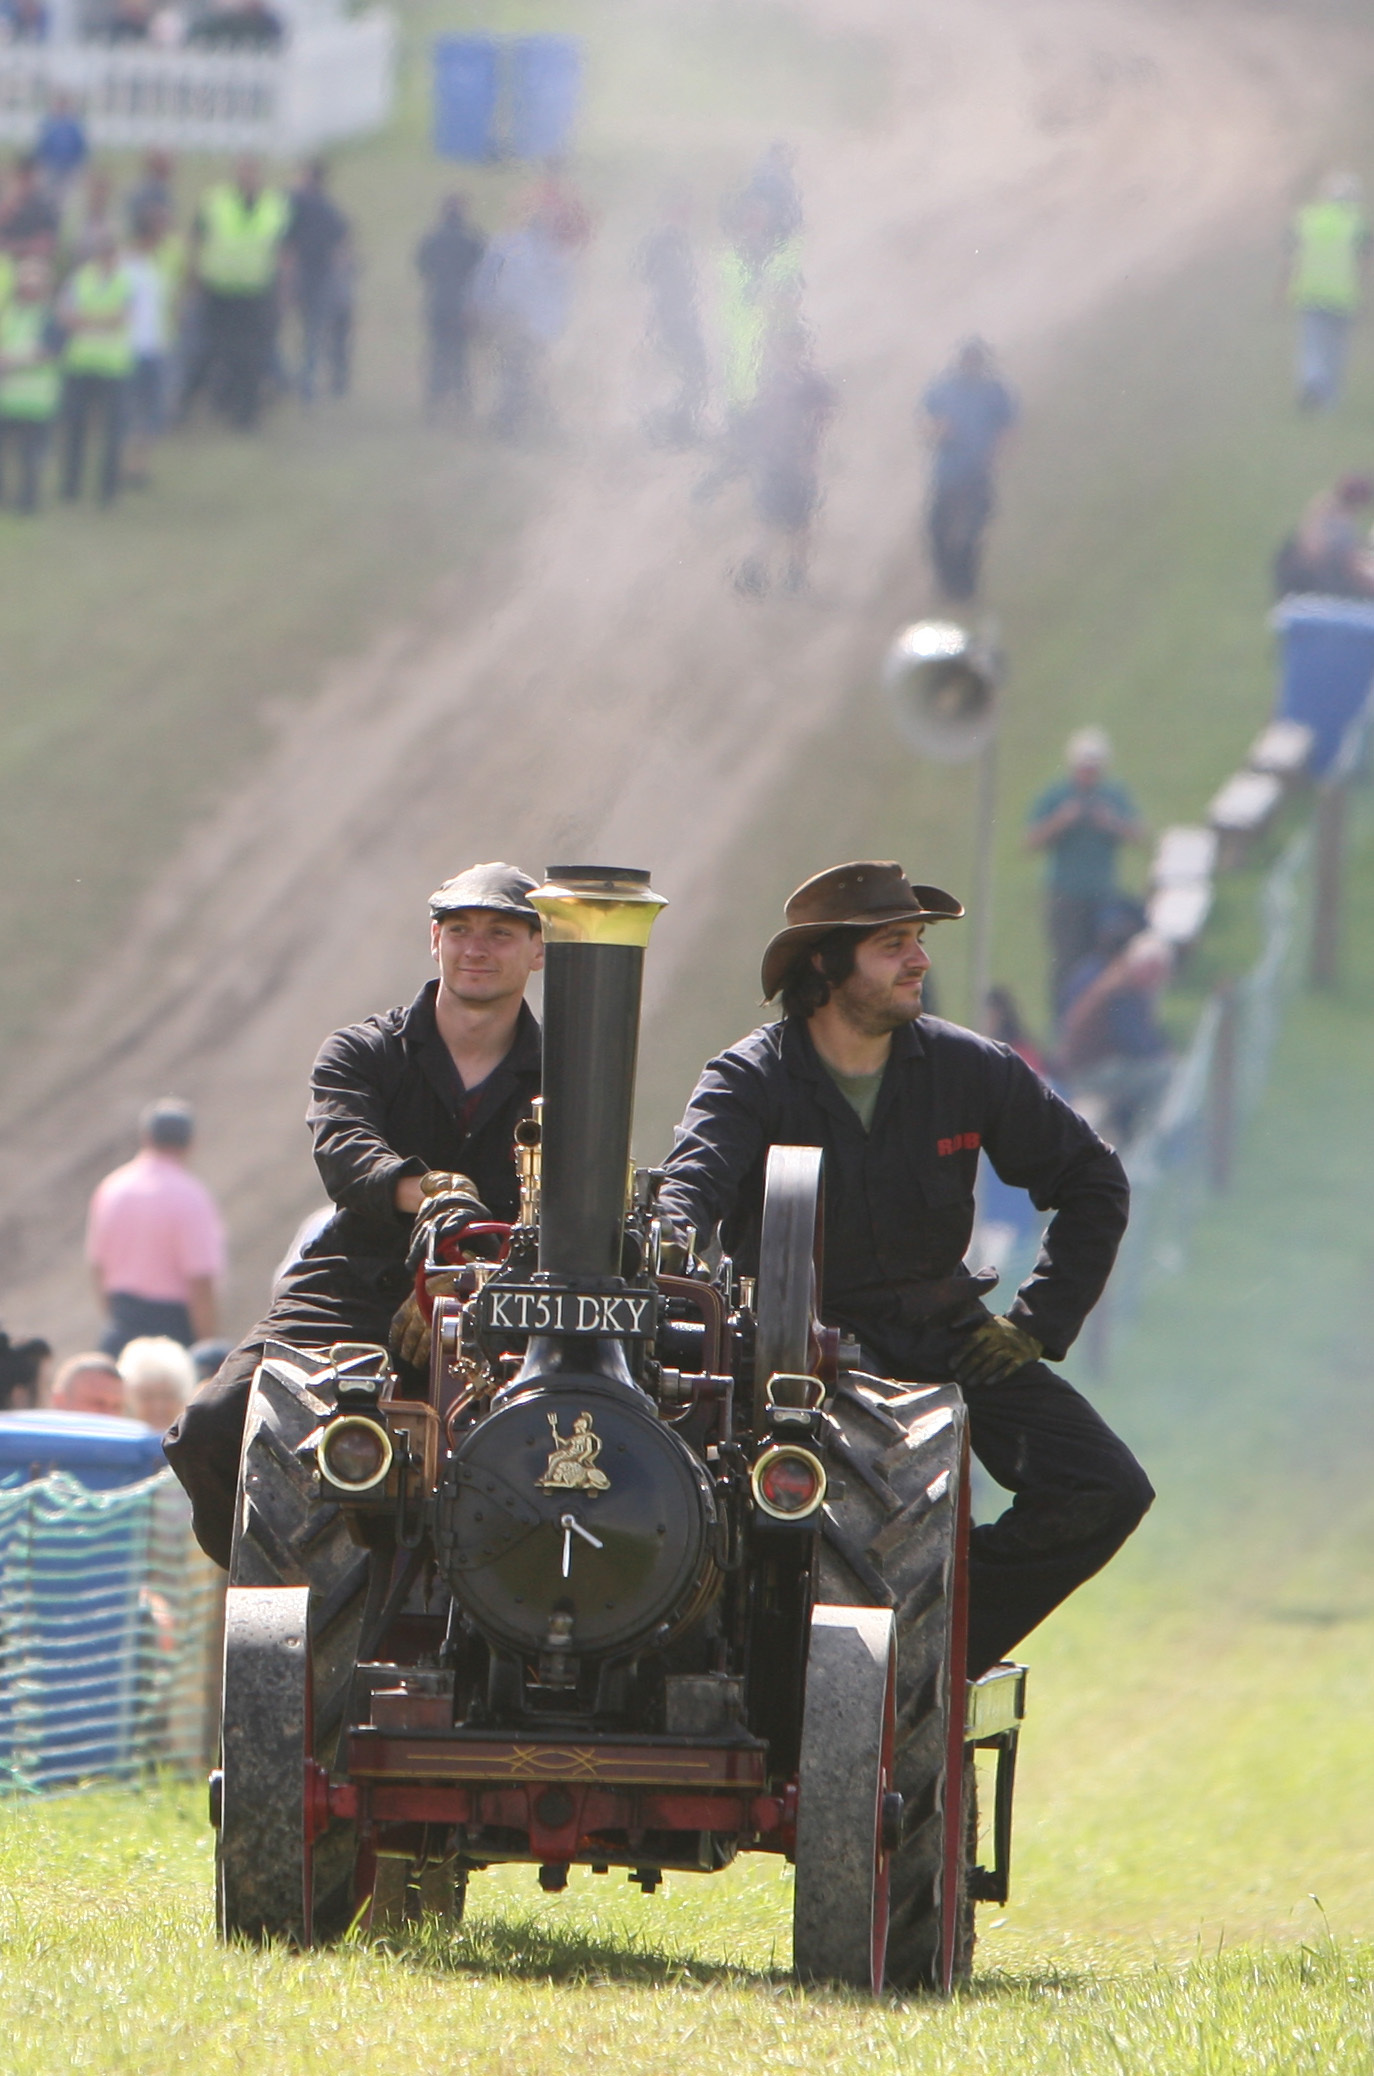 Great Dorset Steam Fair at Tarrant Hinton .RC020915ndSteamfair  - PICTURE BY RICHARD CREASE.